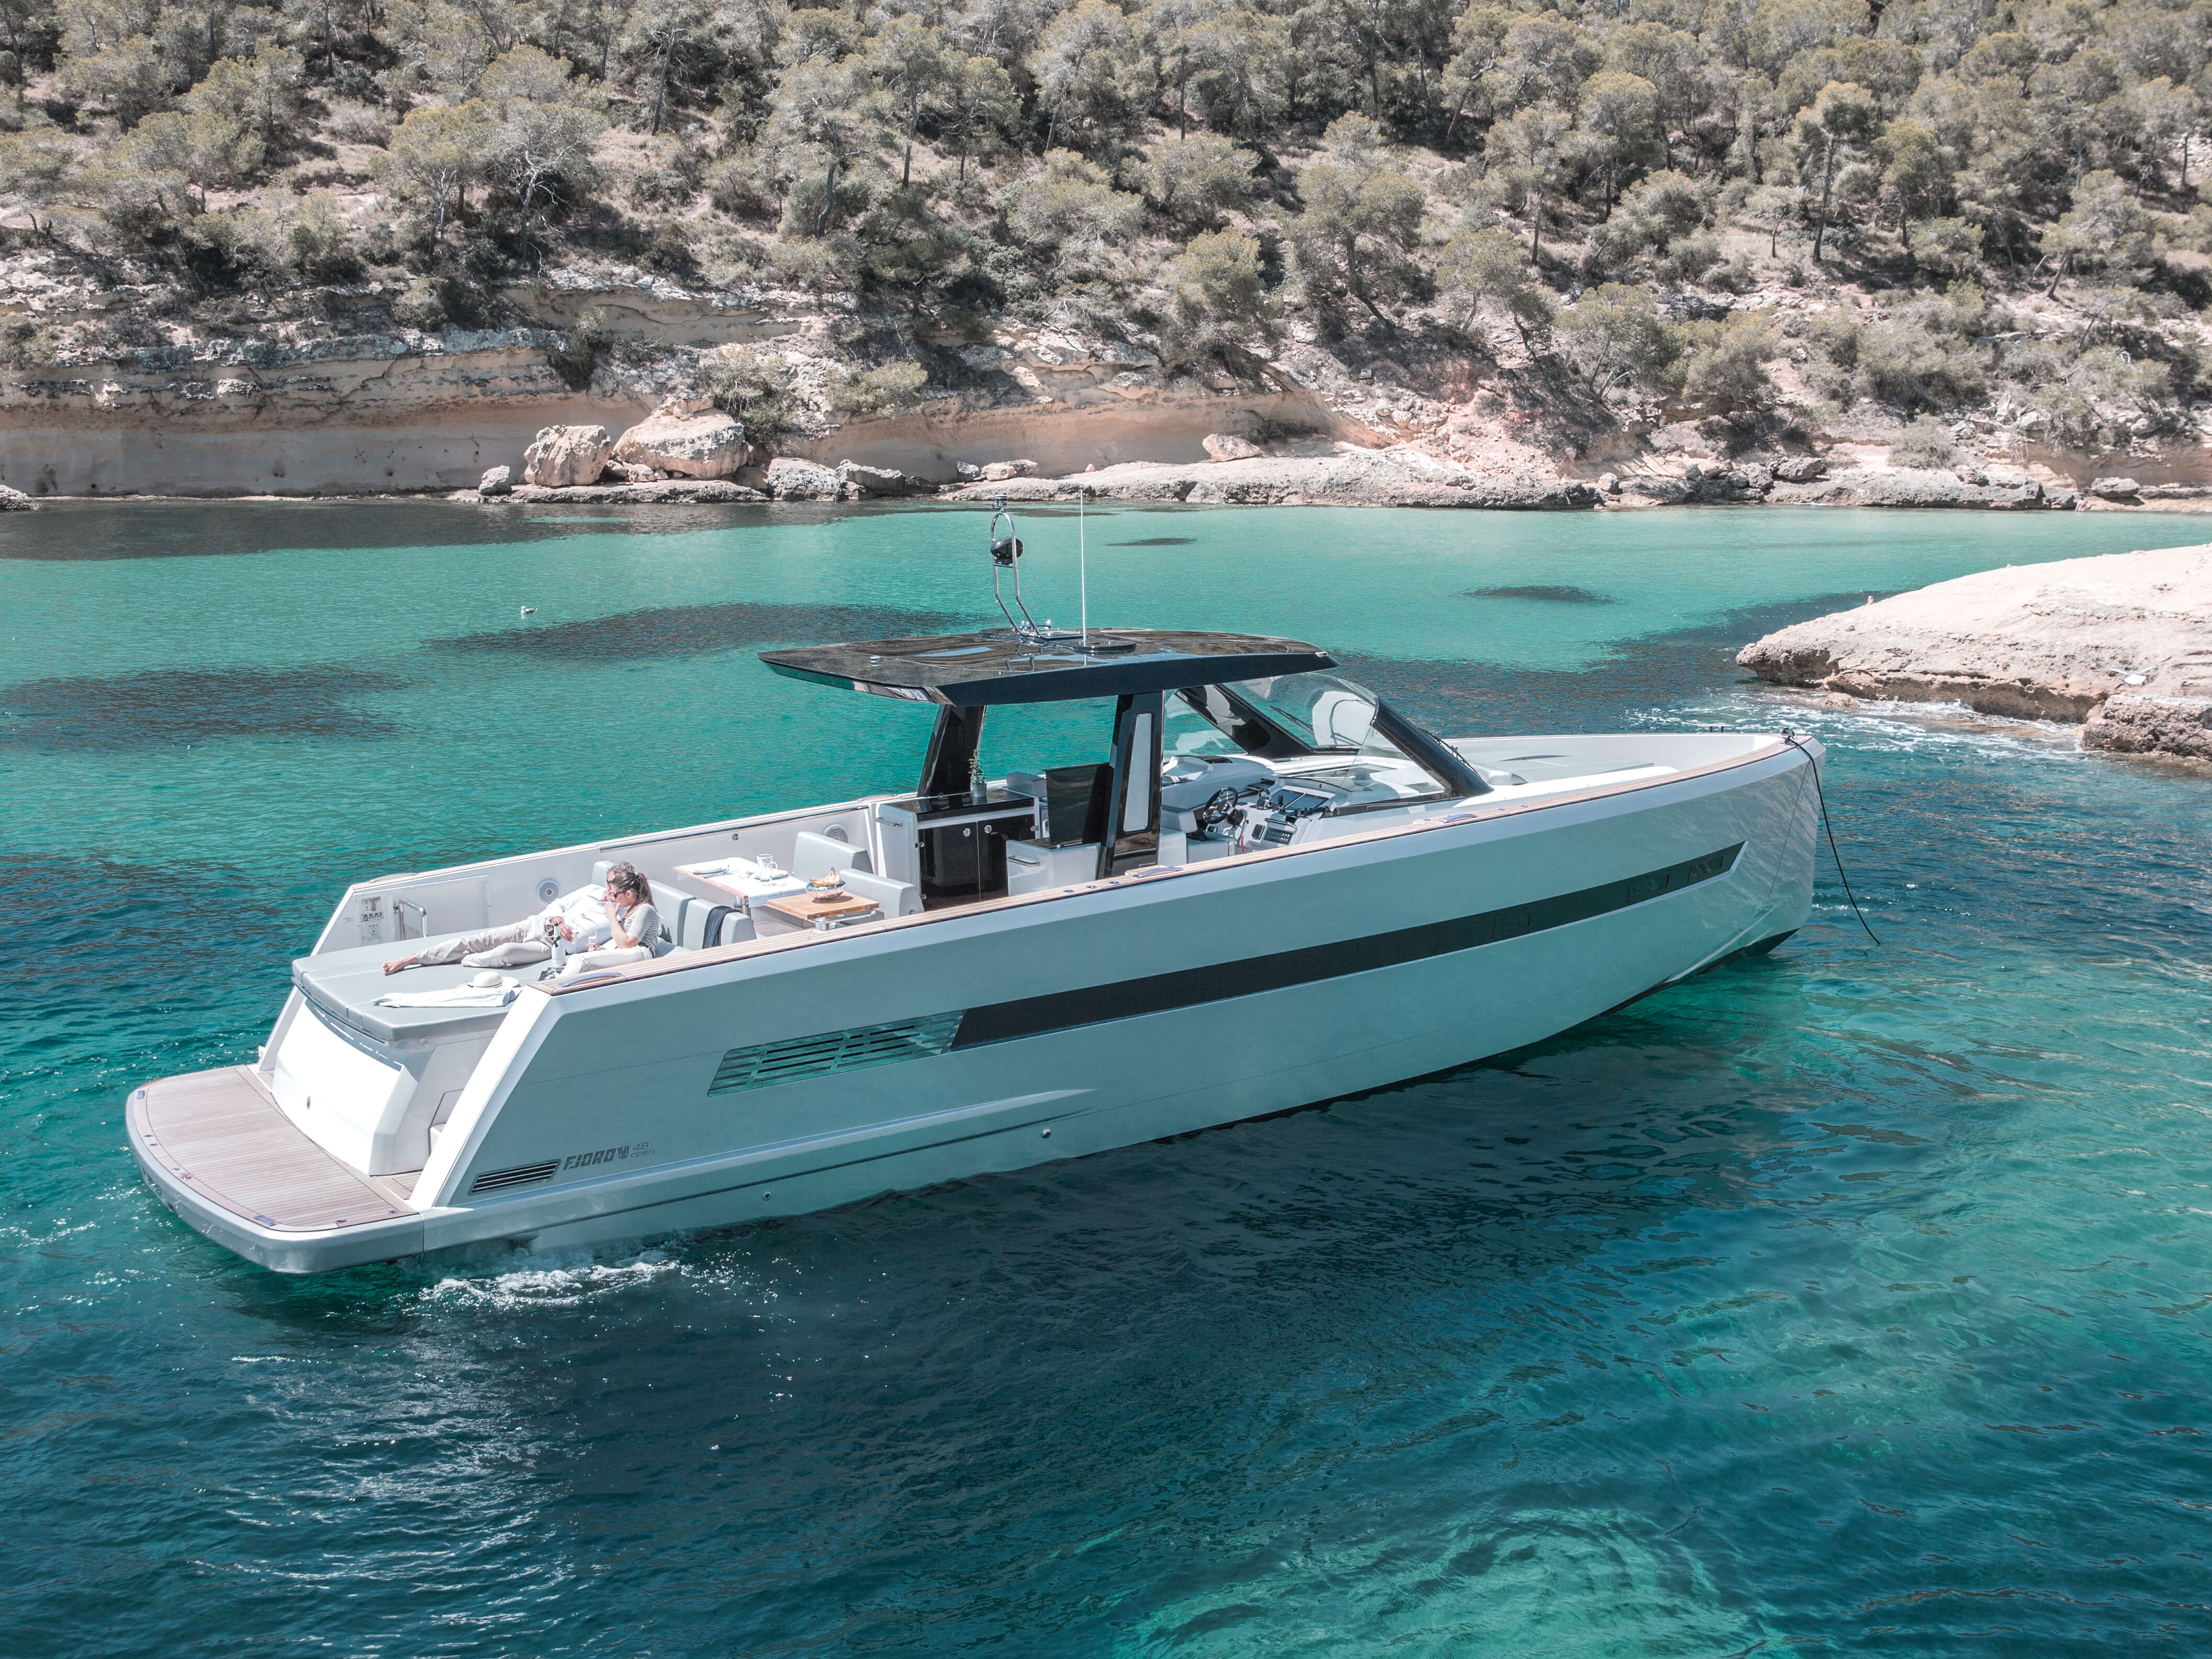 Fjord 48 open Exterior at anchor | painted hull, T-top with skylights, sitting area with foldable table convertible to sunbed, aft sunbed, bathing platform with teak and hydraulic lift, ladder connecting main deck and bathing platform | Fjord